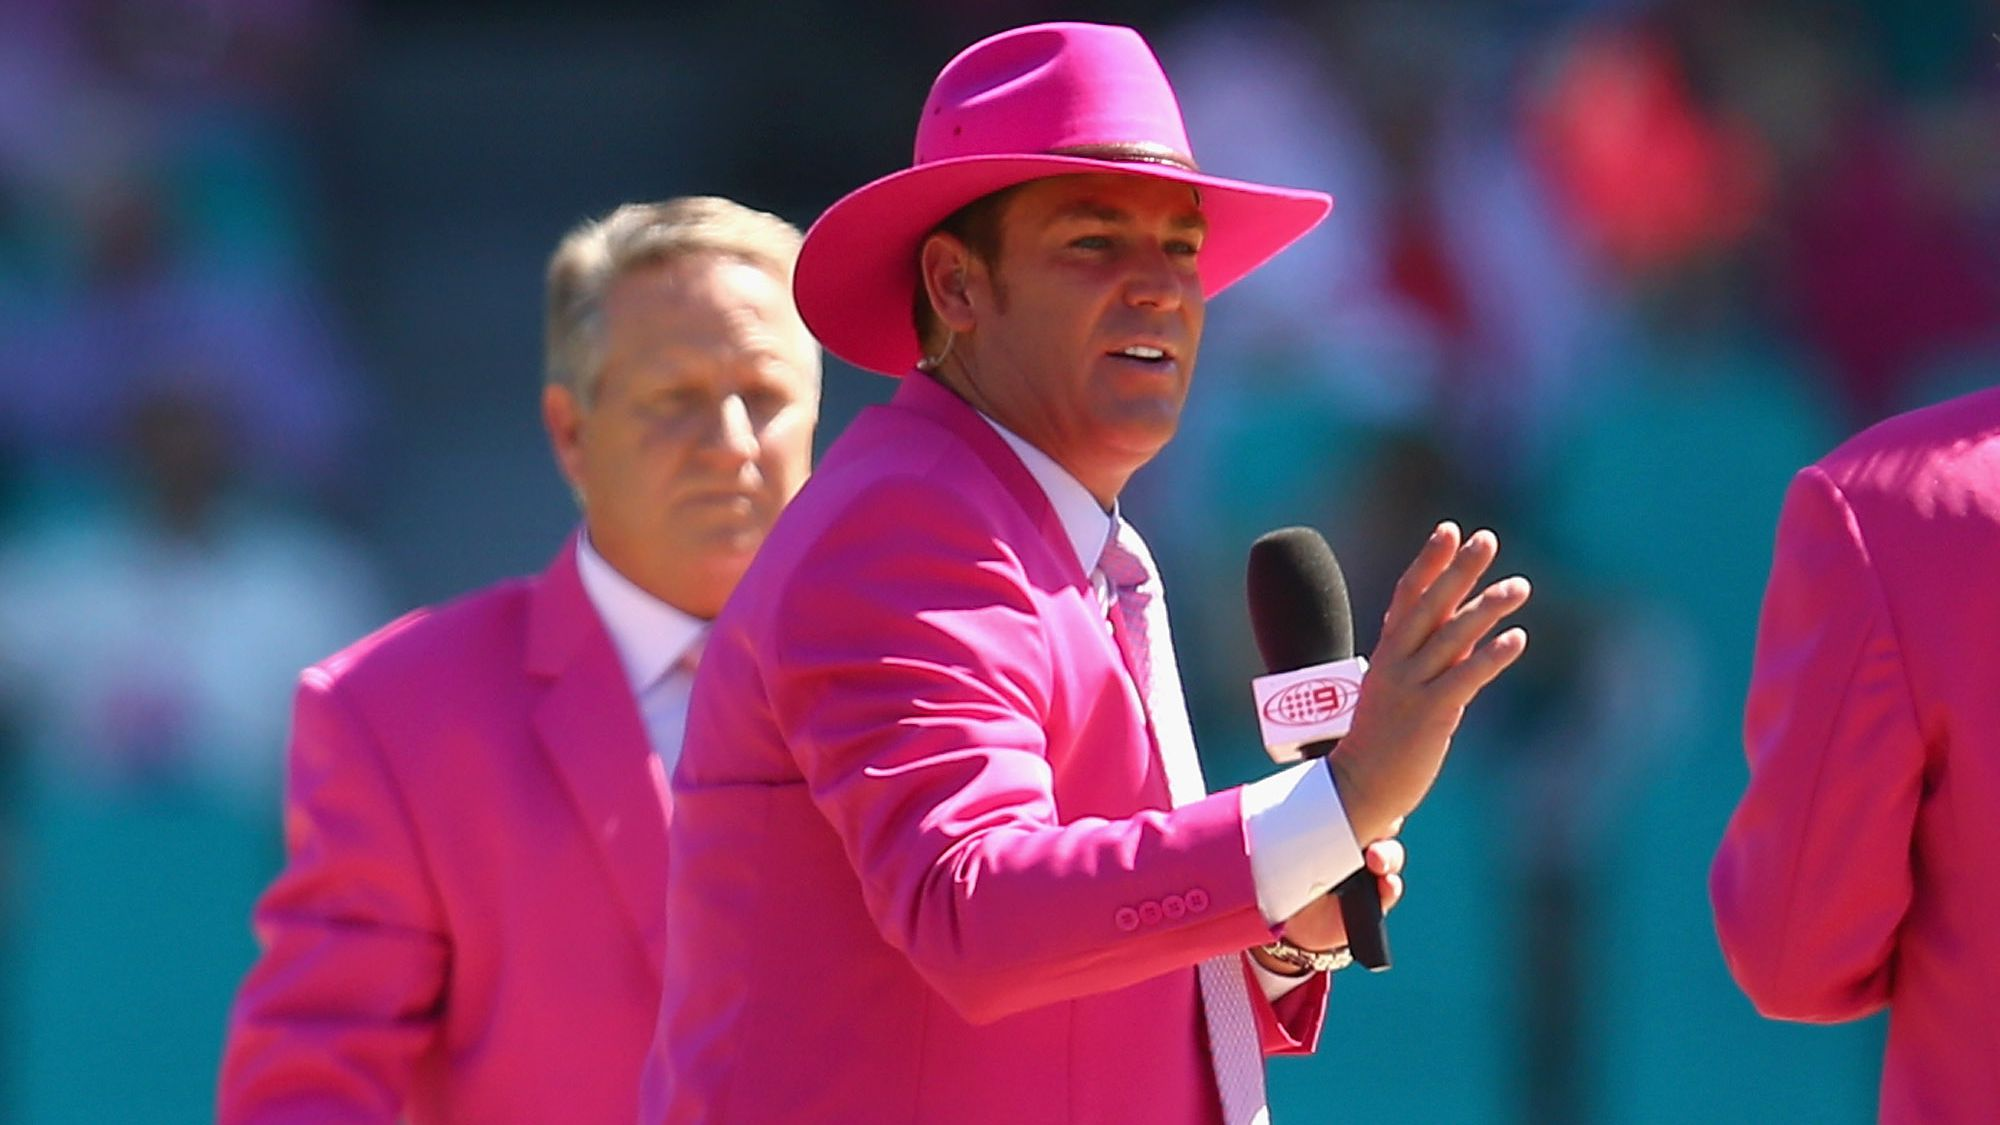 Shane Warne wants to make the pink ball a permanent feature of Test cricket